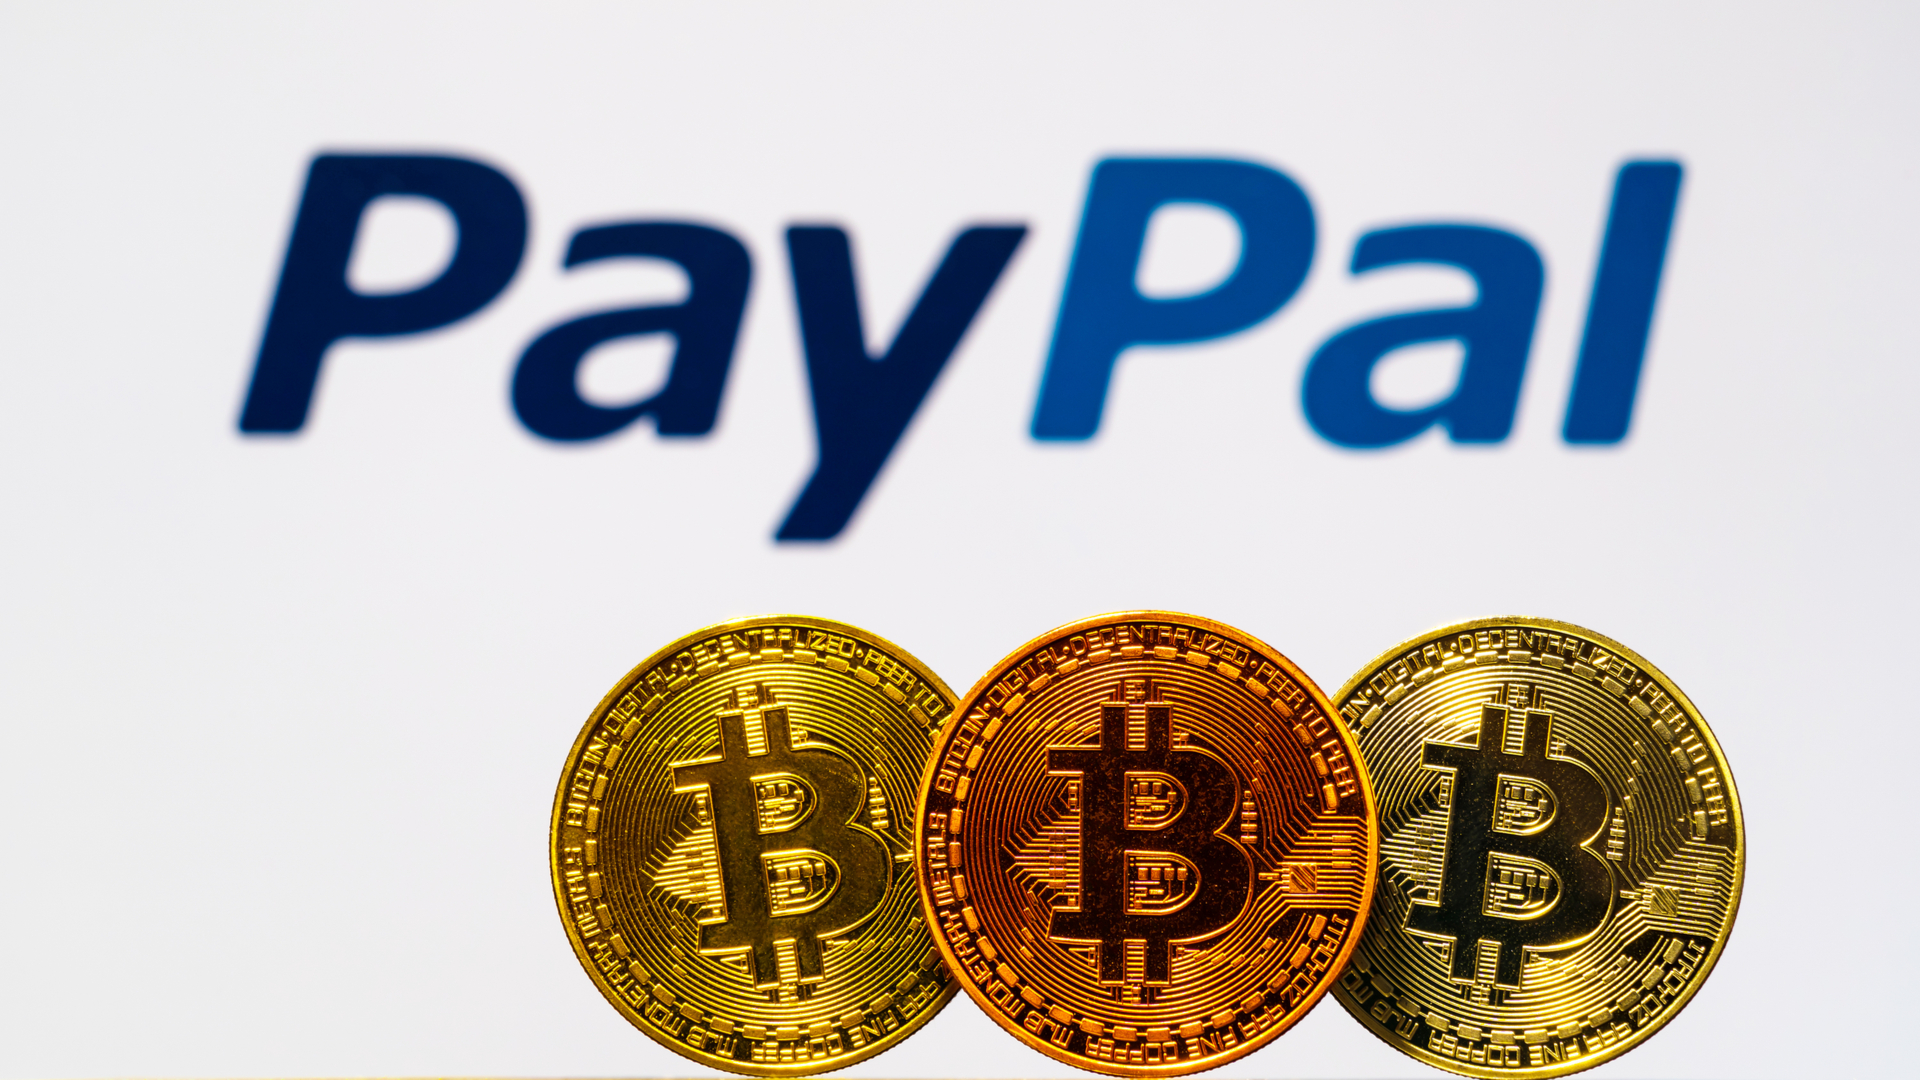 Buy bitcoins with paypal uk helpline sports betting terms explained definition